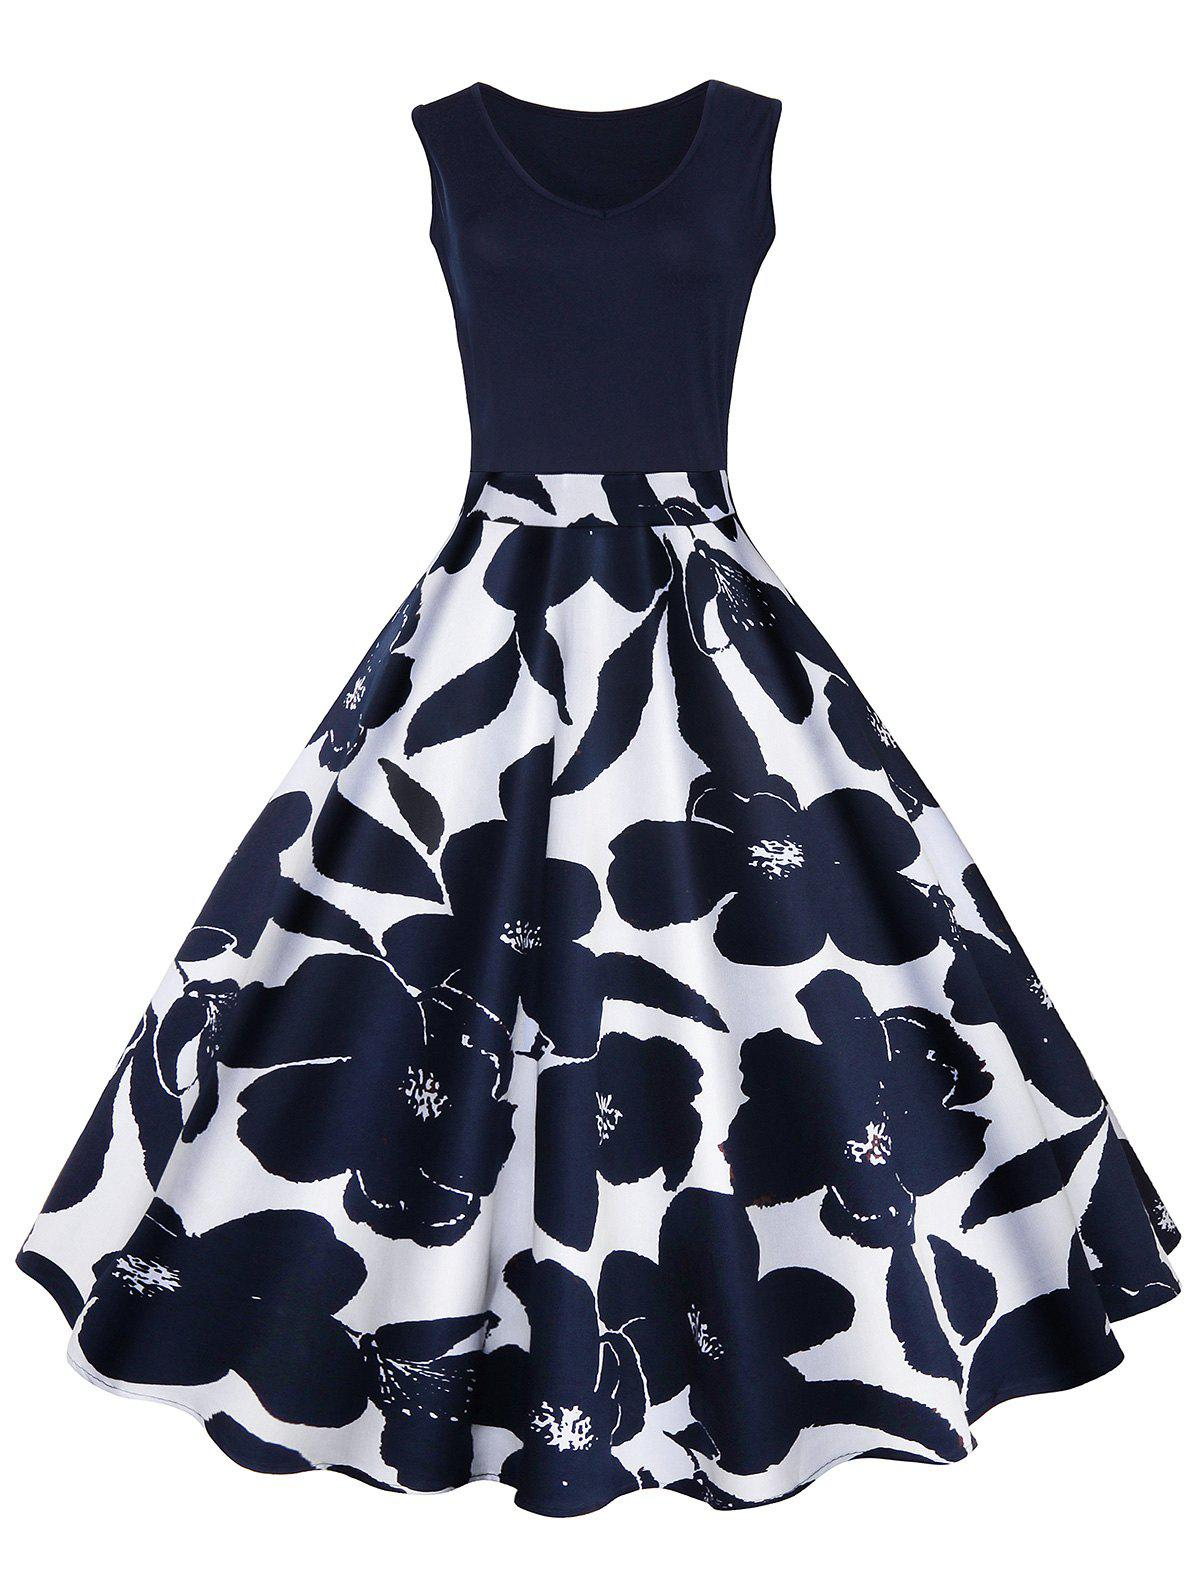 High Waisted Printed Vintage DressWOMEN<br><br>Size: M; Color: CERULEAN; Style: Vintage; Material: Cotton,Polyester; Silhouette: A-Line; Dresses Length: Mid-Calf; Neckline: V-Neck; Sleeve Length: Sleeveless; Pattern Type: Floral,Polka Dot; With Belt: No; Season: Summer; Weight: 0.3500kg; Package Contents: 1 x Dress;